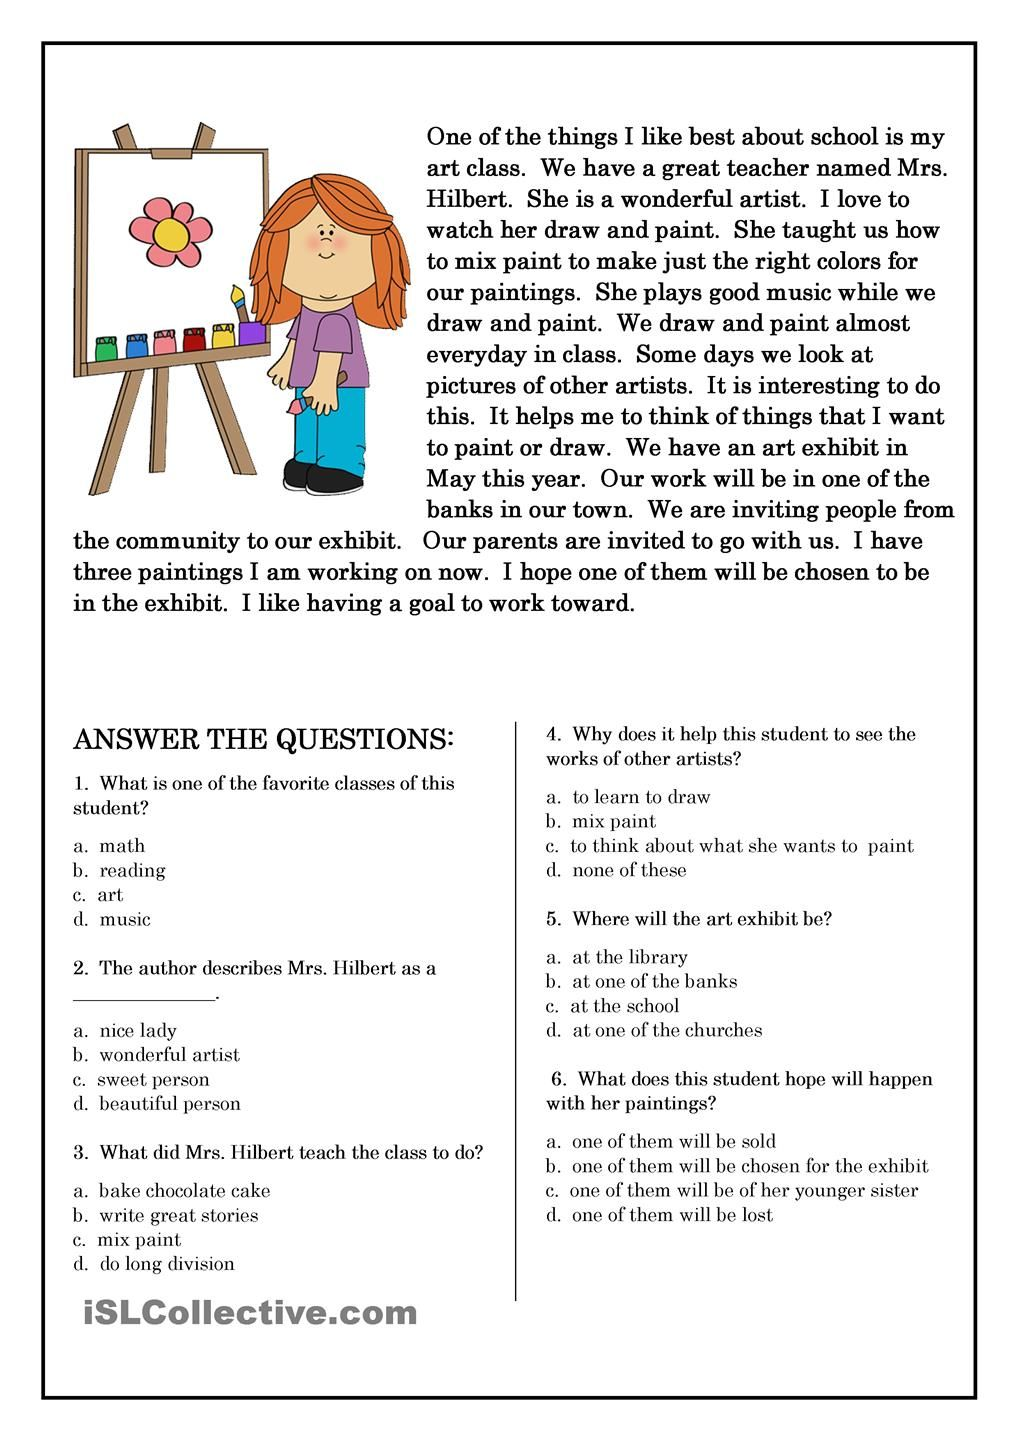 Worksheet Comprehension For Grade 5 1000 images about reading comprehension on pinterest simple sentences grade 1 and english short stories